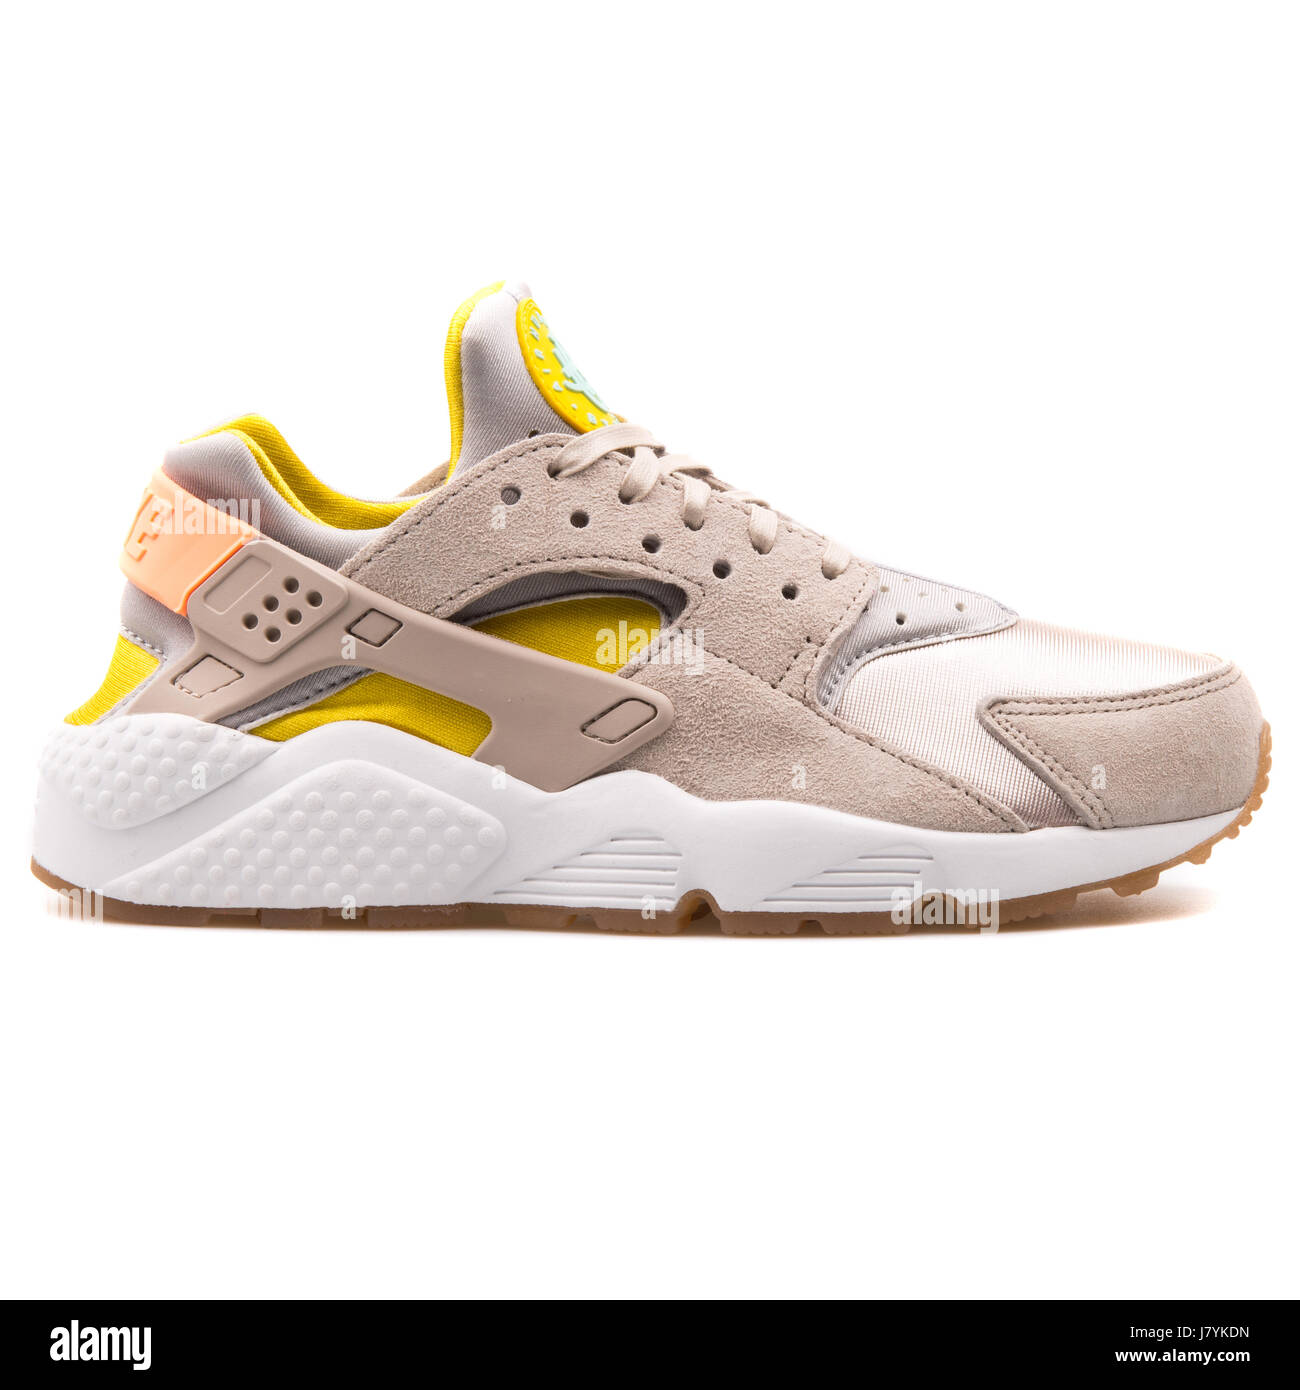 new product 9c954 1d5af Nike WMNS Air Huarache Run PRM Women s Metallic Silver Running Sneakers -  683818-002